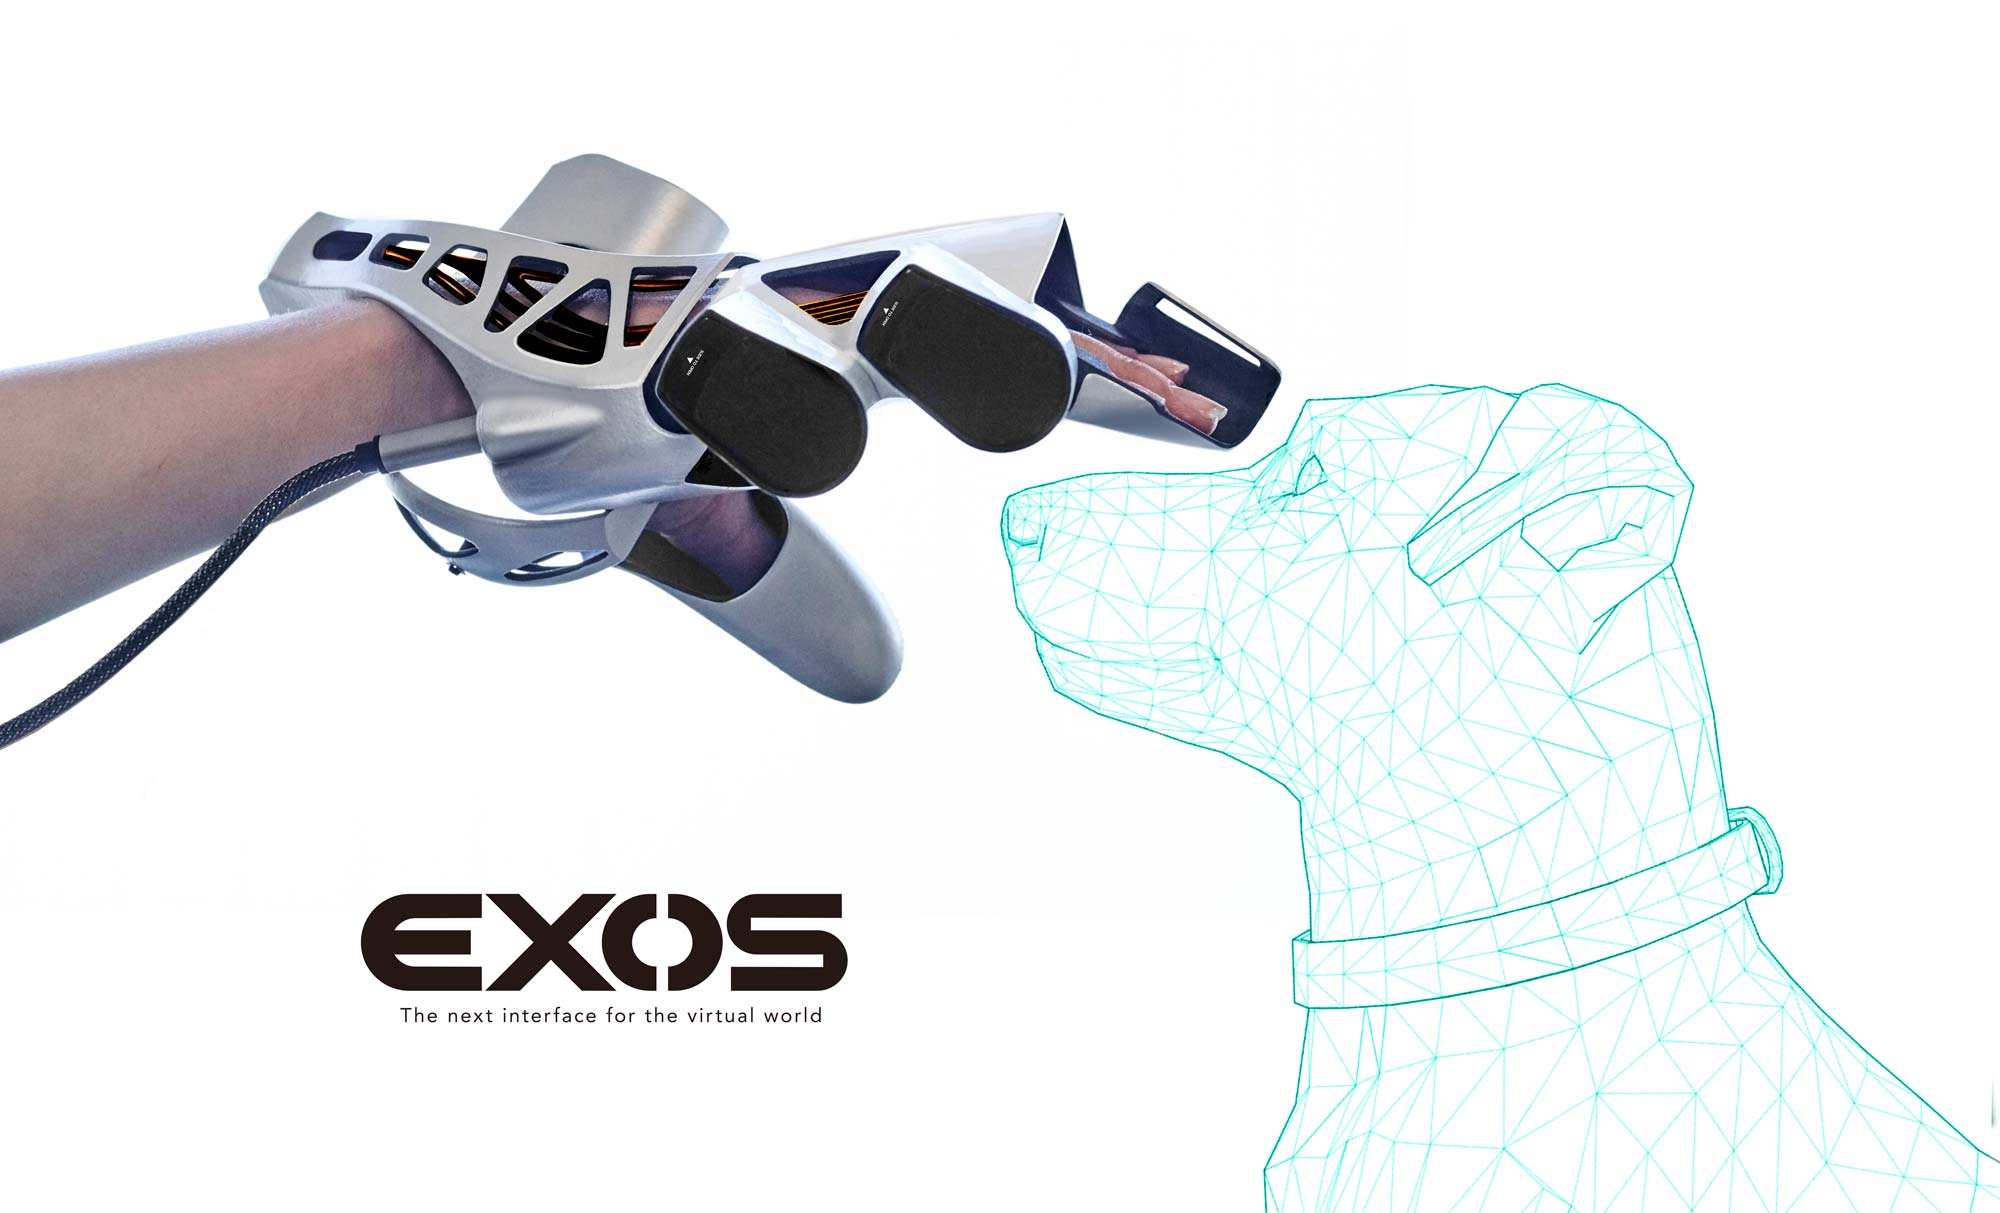 The Exos device will now let you experience touching dogs. Image via Exiii.